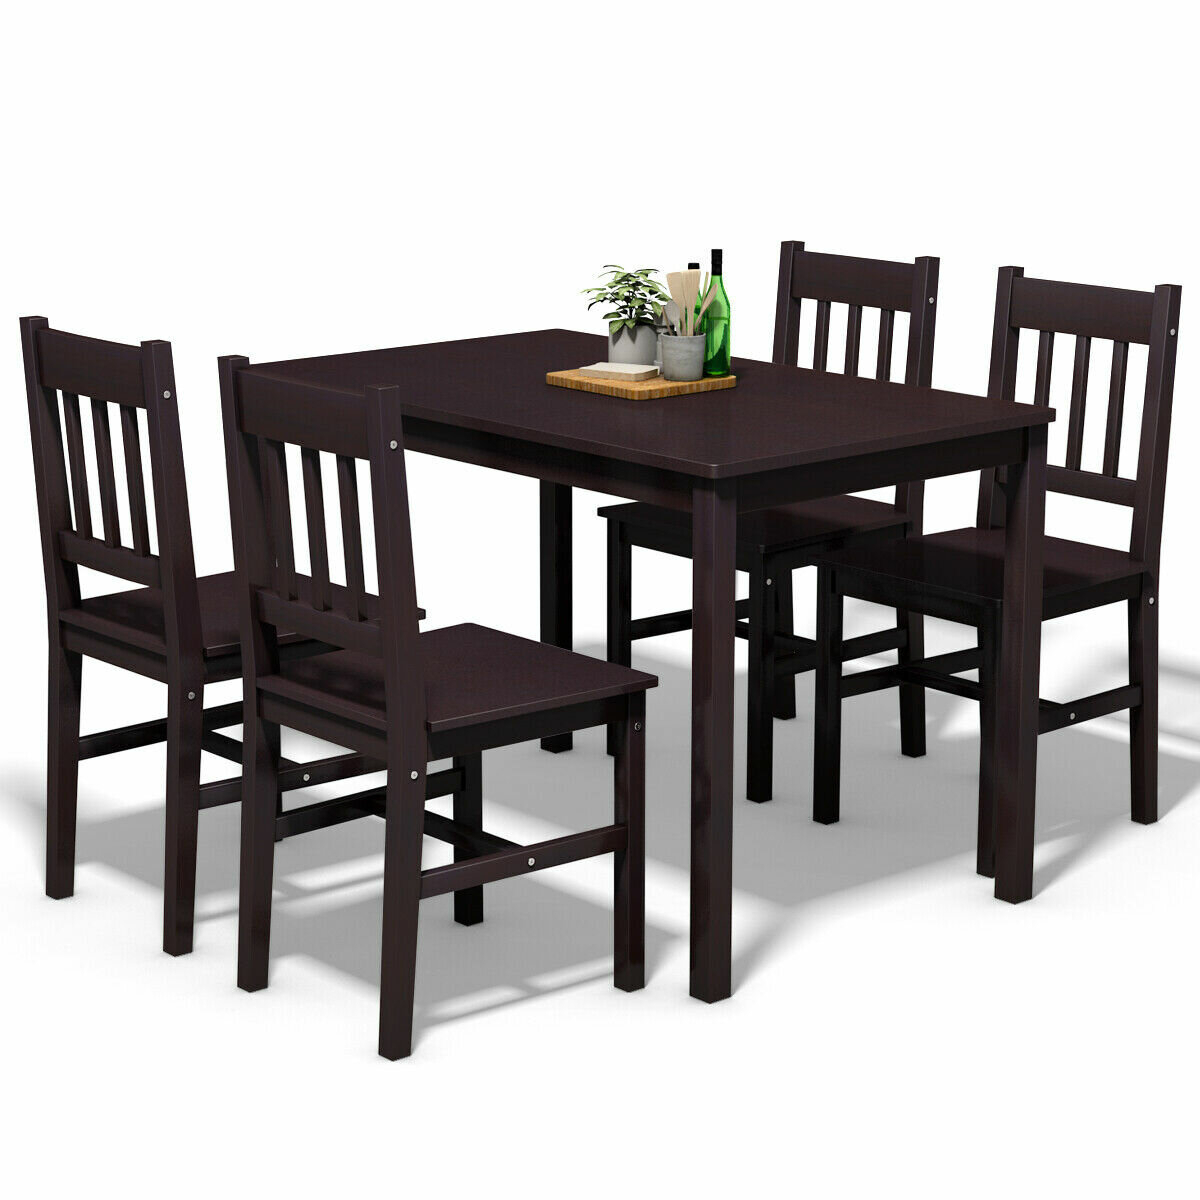 Sundberg 5 Piece Solid Wood Dining Set Within Most Up To Date Pattonsburg 5 Piece Dining Sets (View 6 of 20)